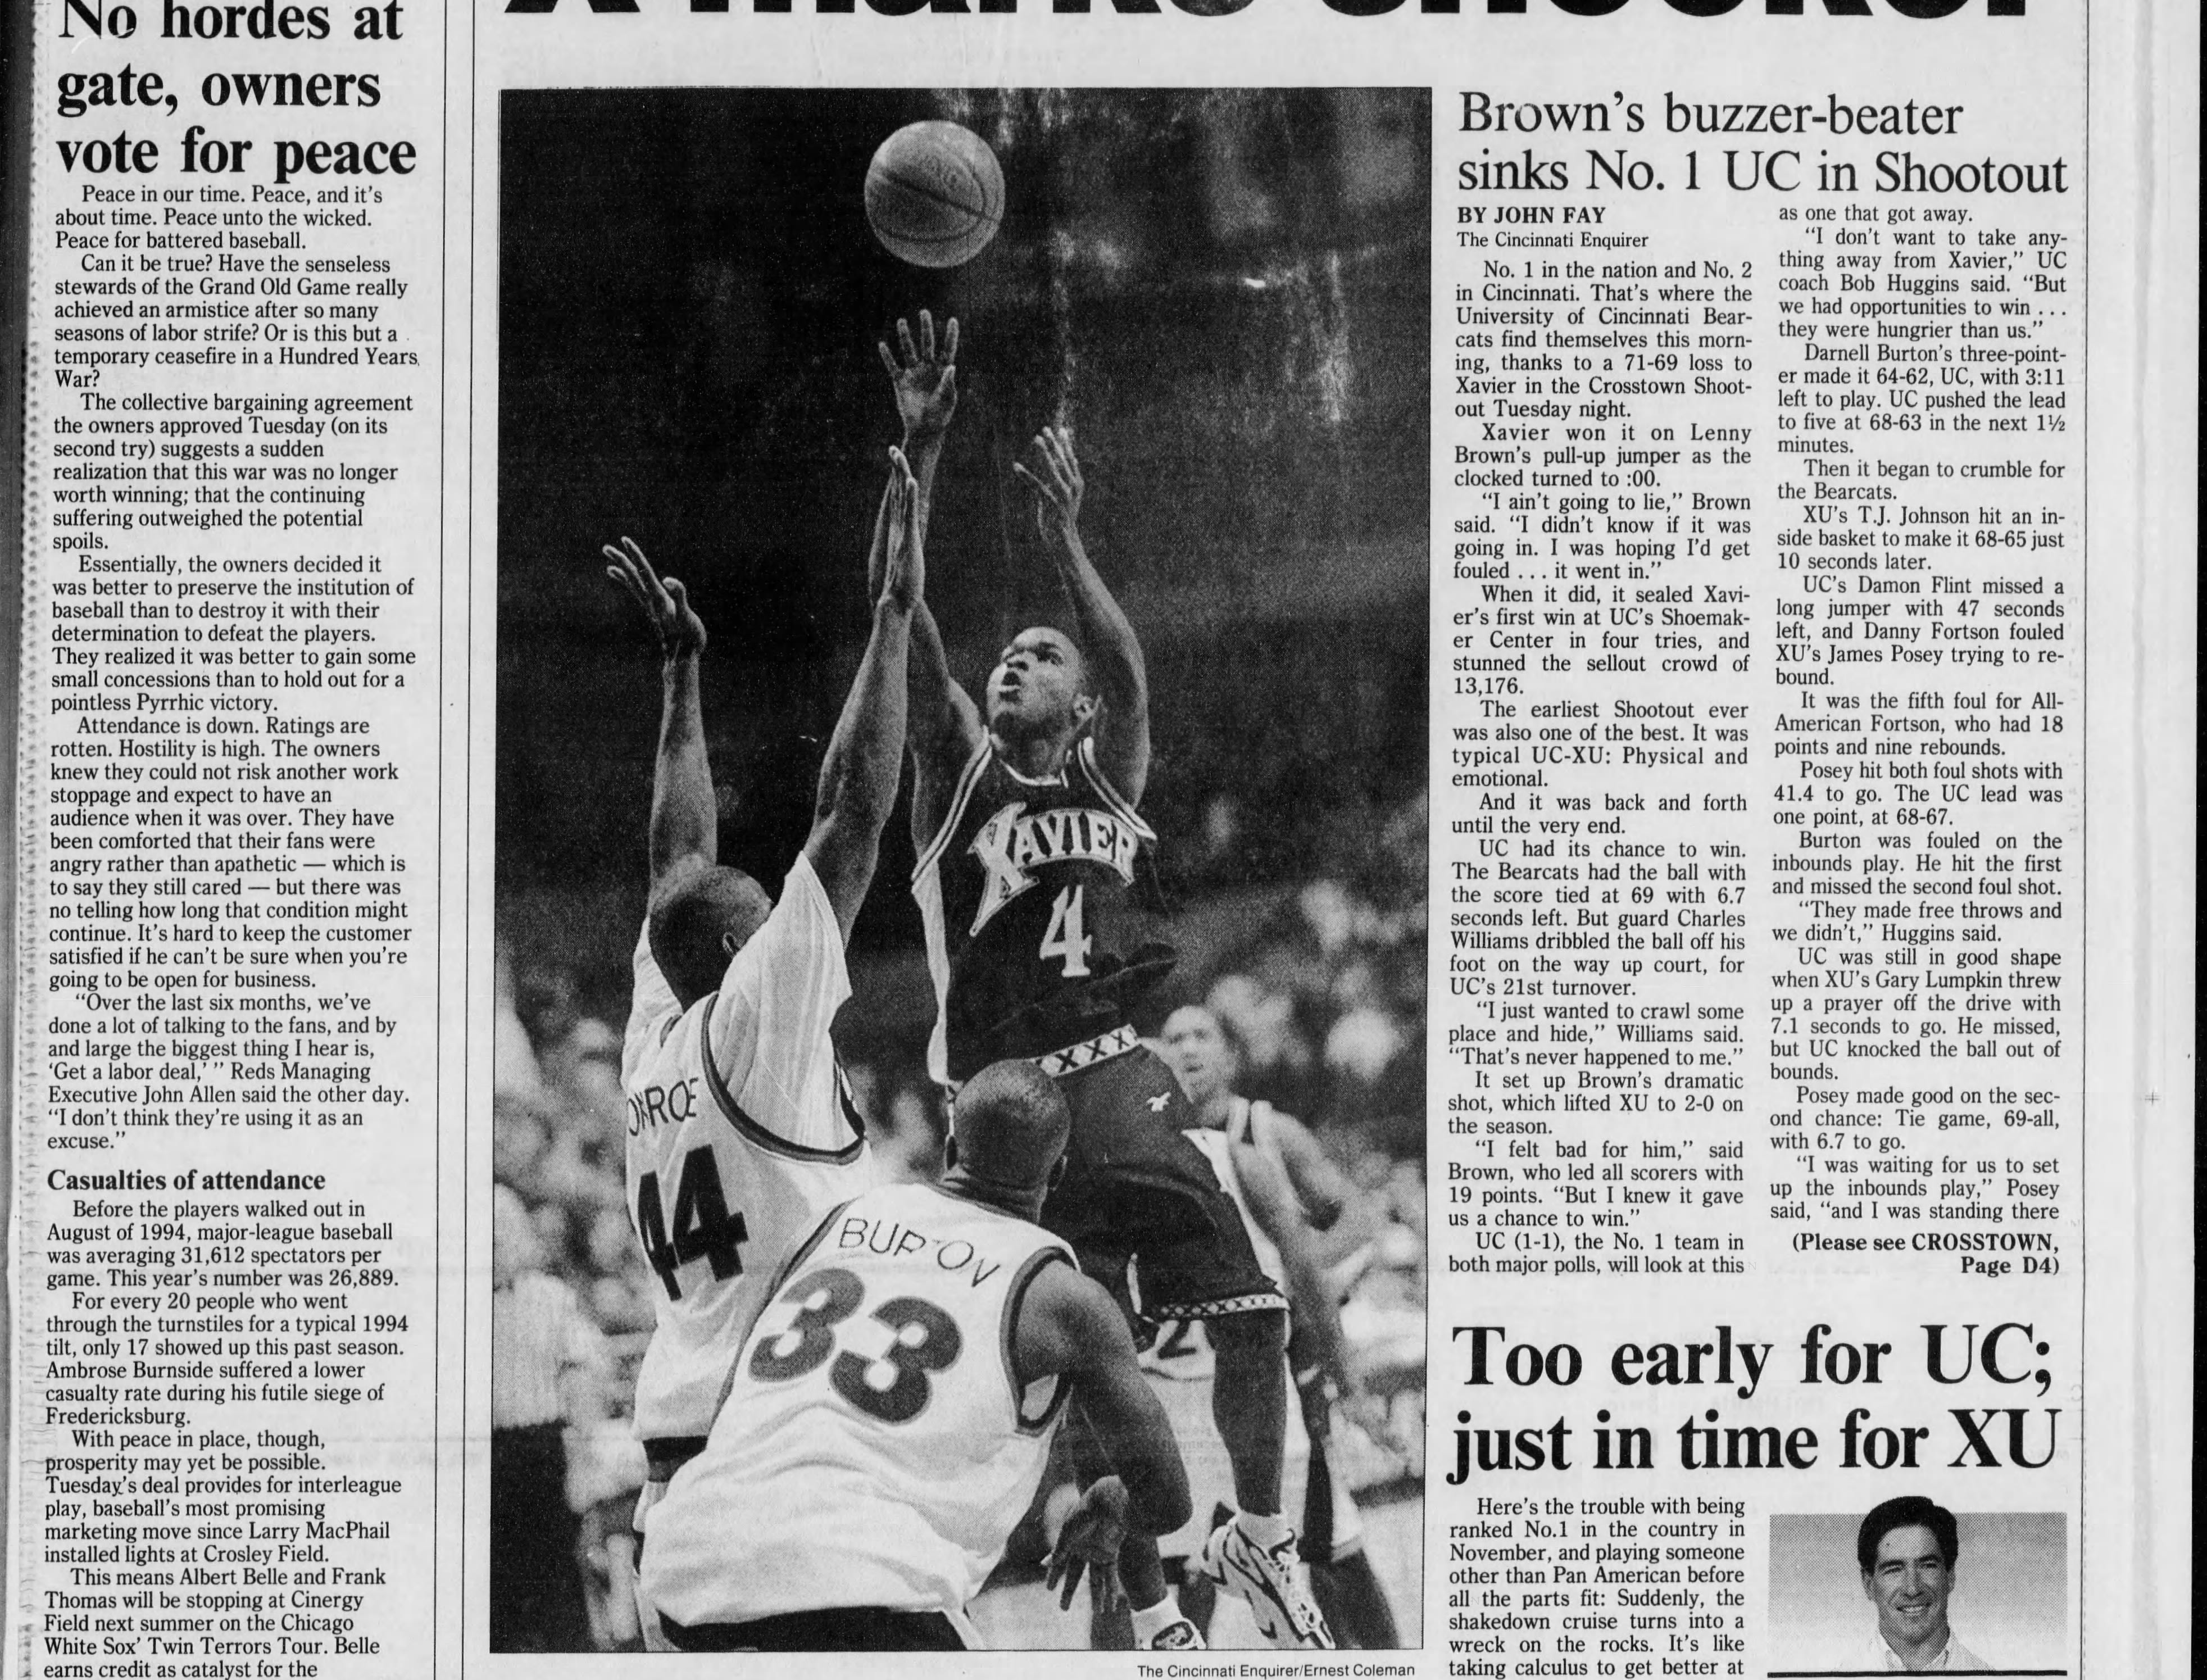 Lenny Brown's buzzer-beater led Xavier over No. 1-ranked UC in the 1996-97 version of the Crosstown Shootout.